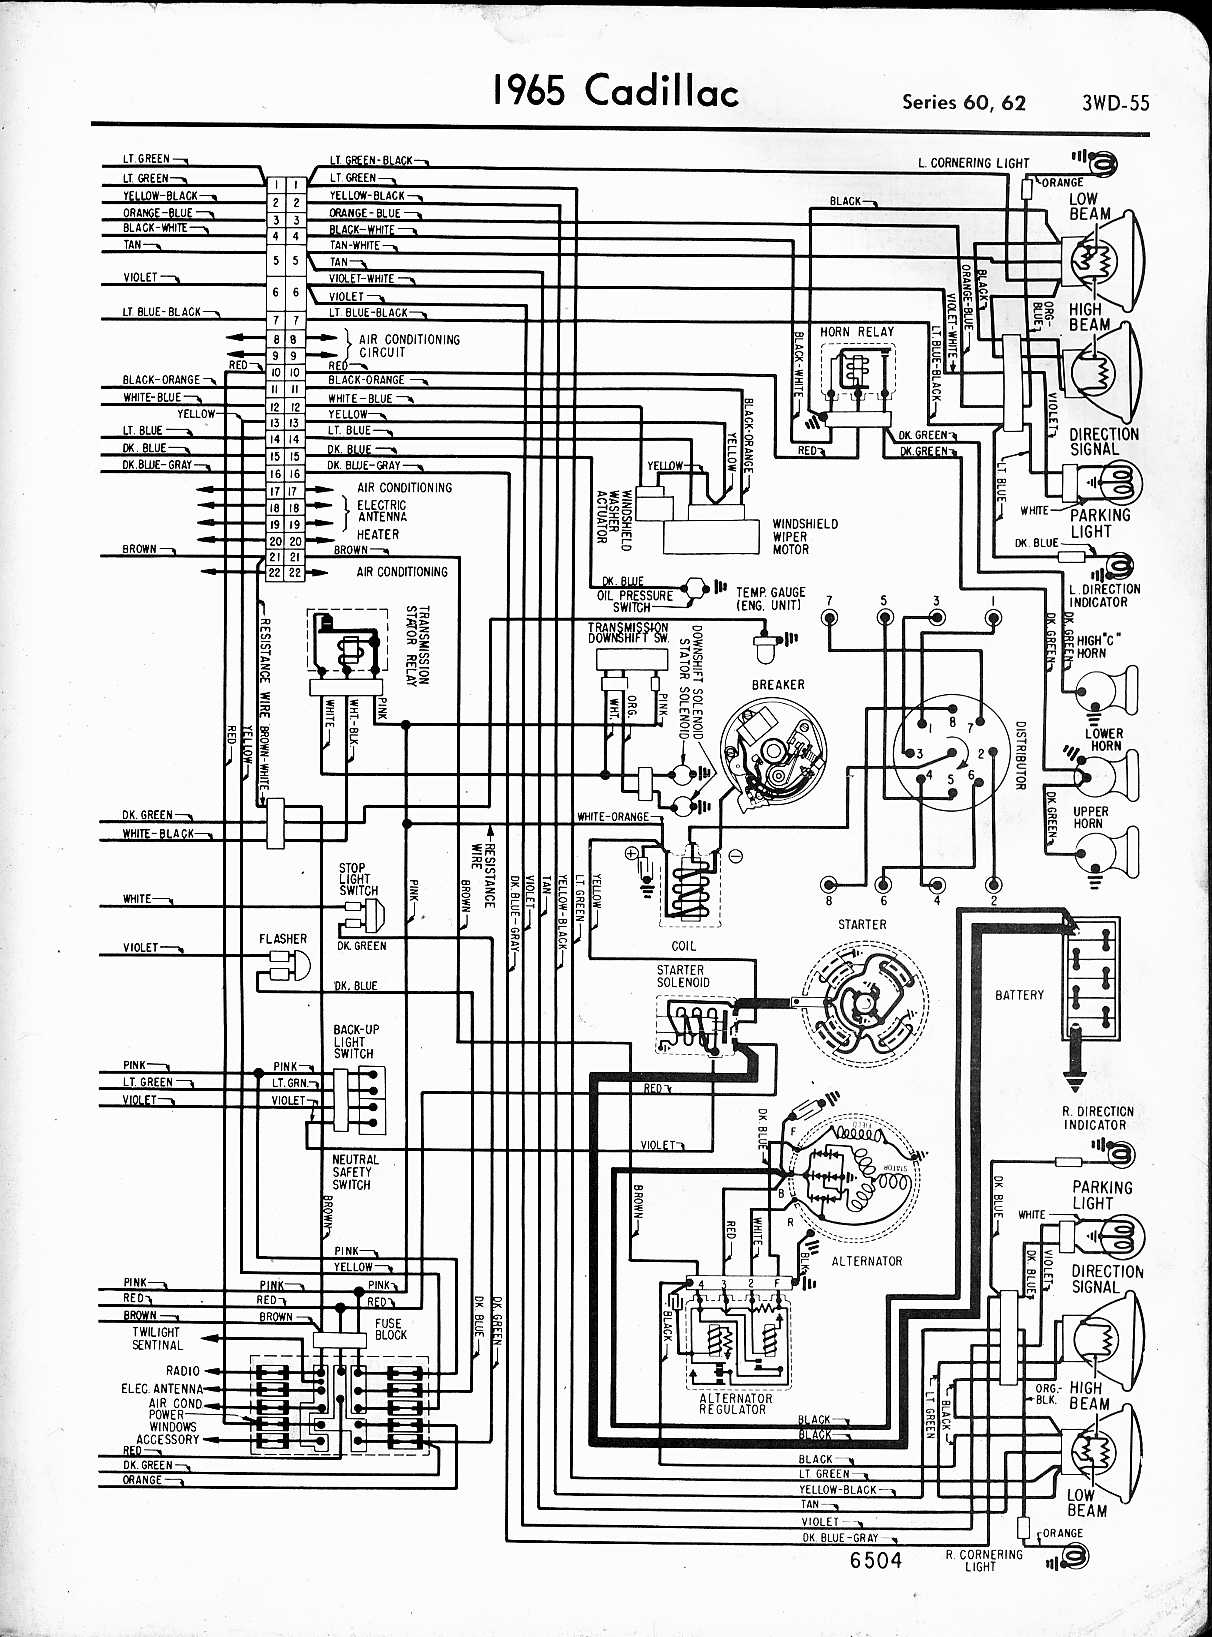 [TBQL_4184]  1965 Cadillac Wiring Diagram Diagram Base Website Wiring Diagram -  HEARTDIAGRAMWORKSHEET.RIFUGIDELLAROSA.IT | Cadillac Dts Wiring Diagrams |  | Diagram Base Website Full Edition - rifugidellarosa